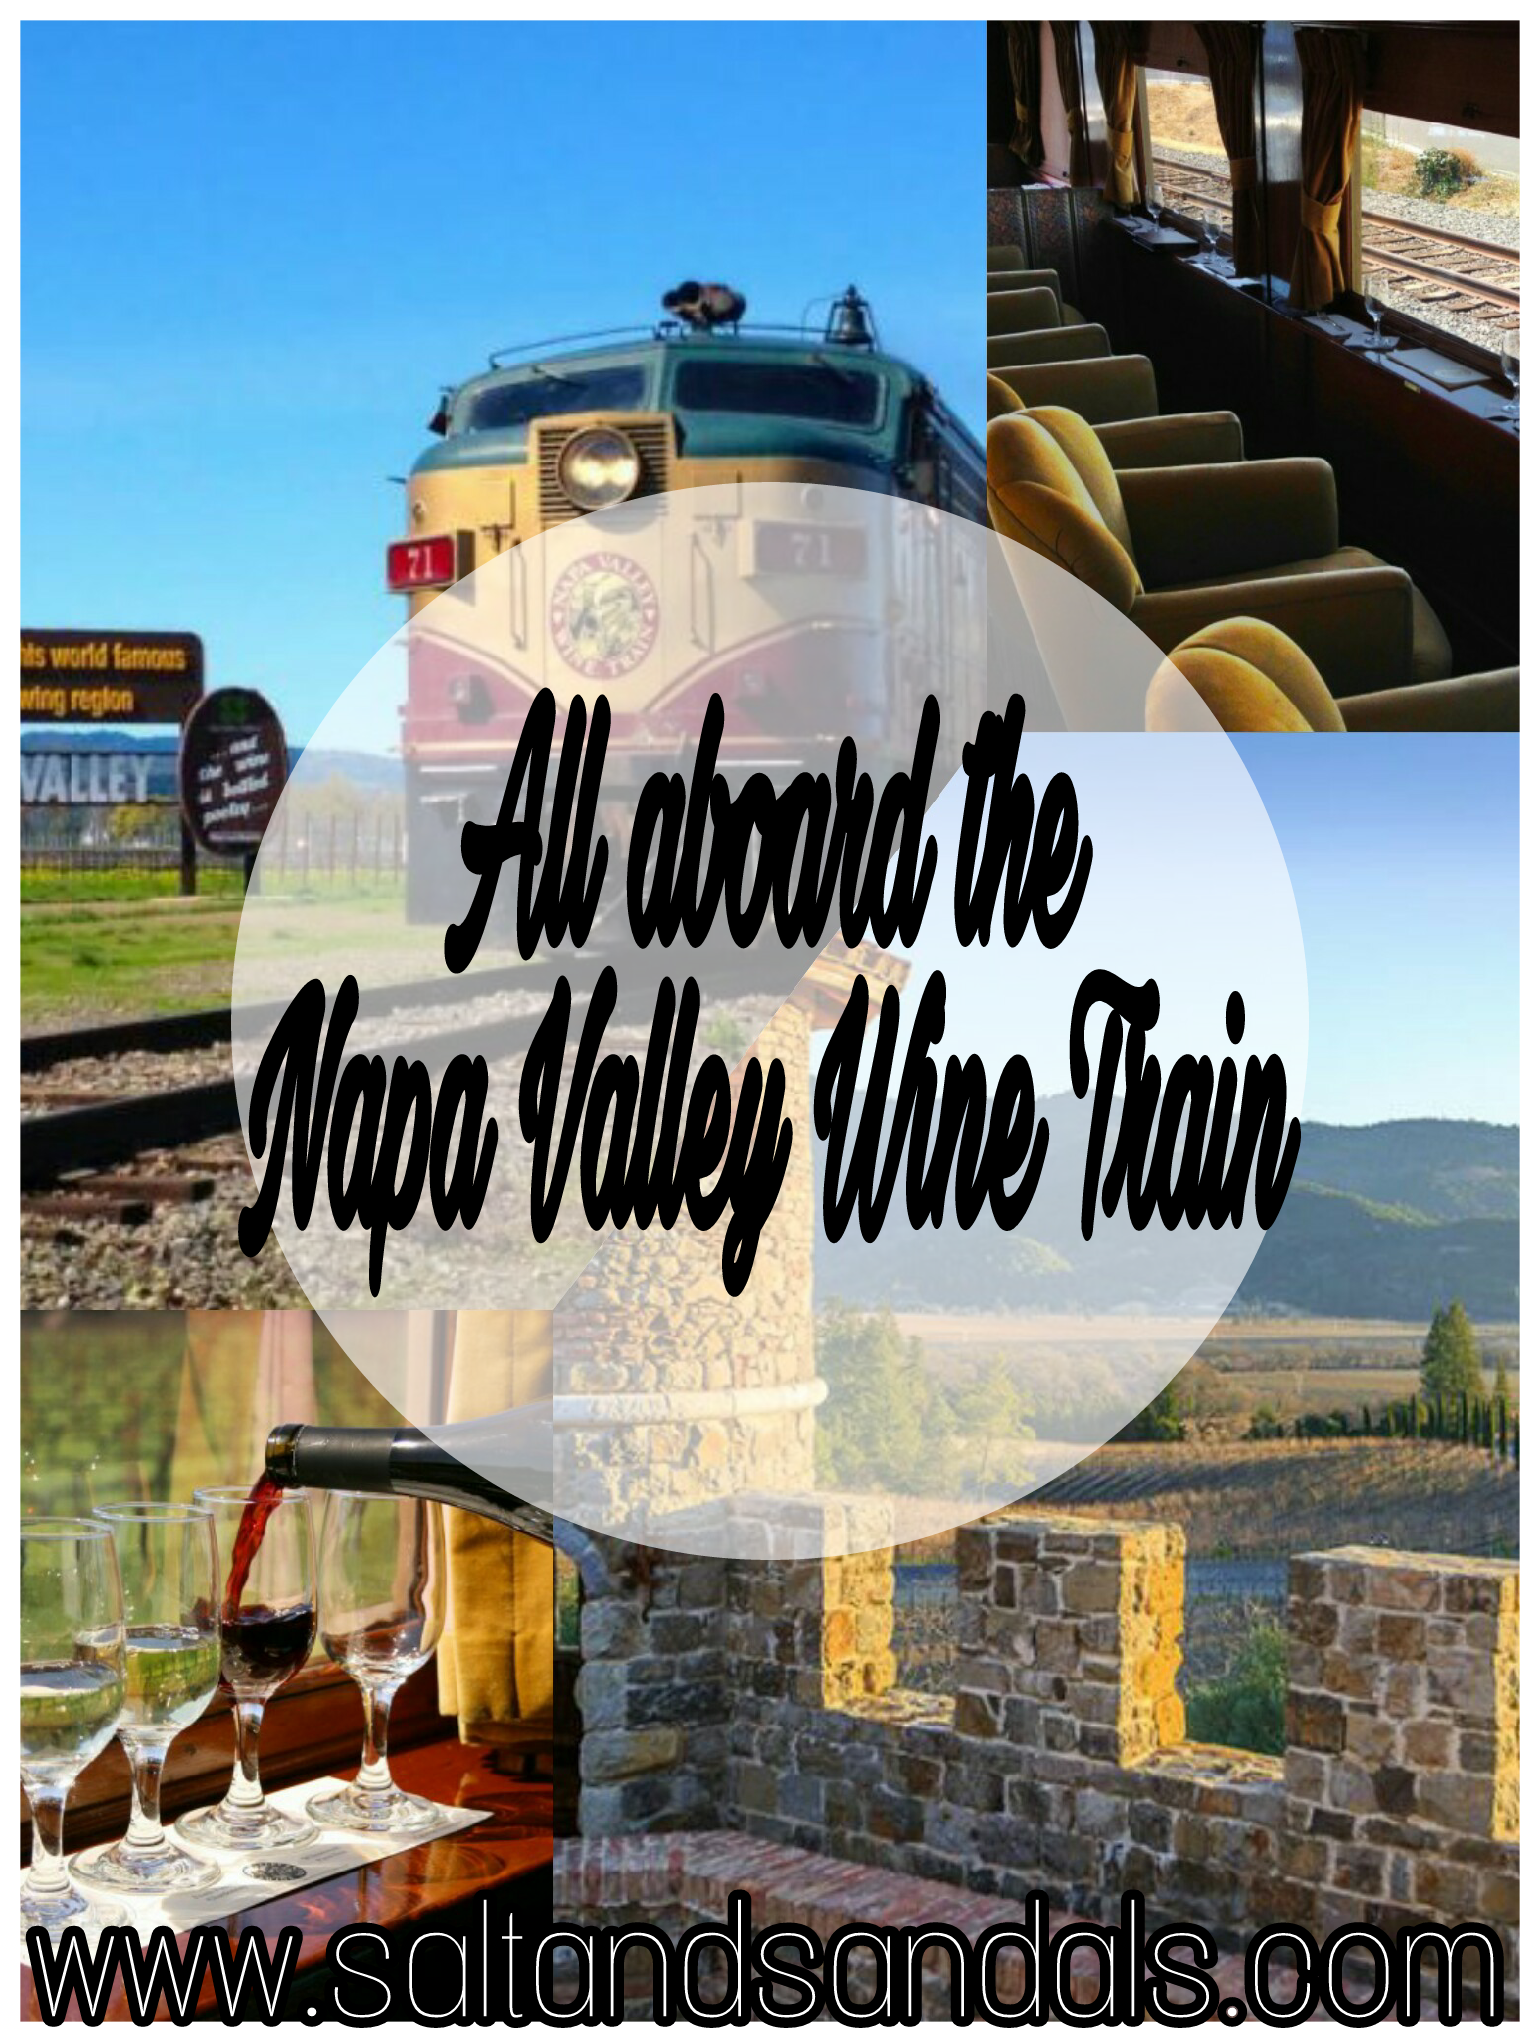 All aboard the Napa Valley Wine Train